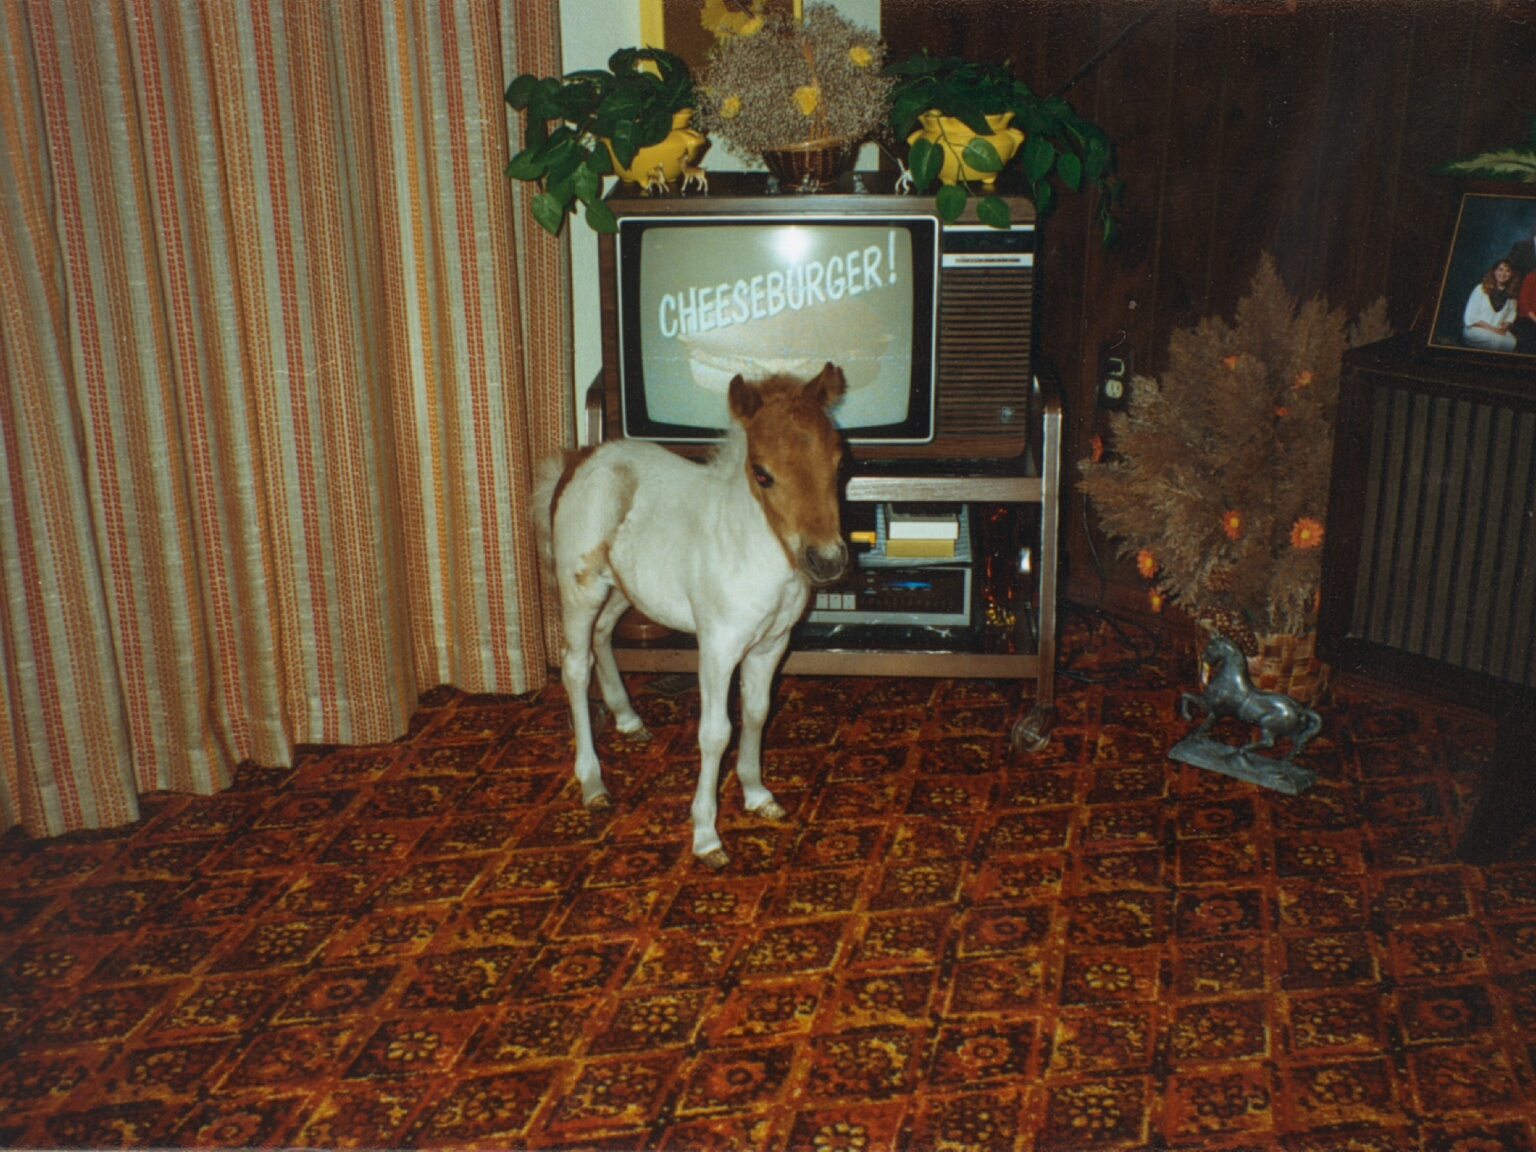 Tater in Family Room